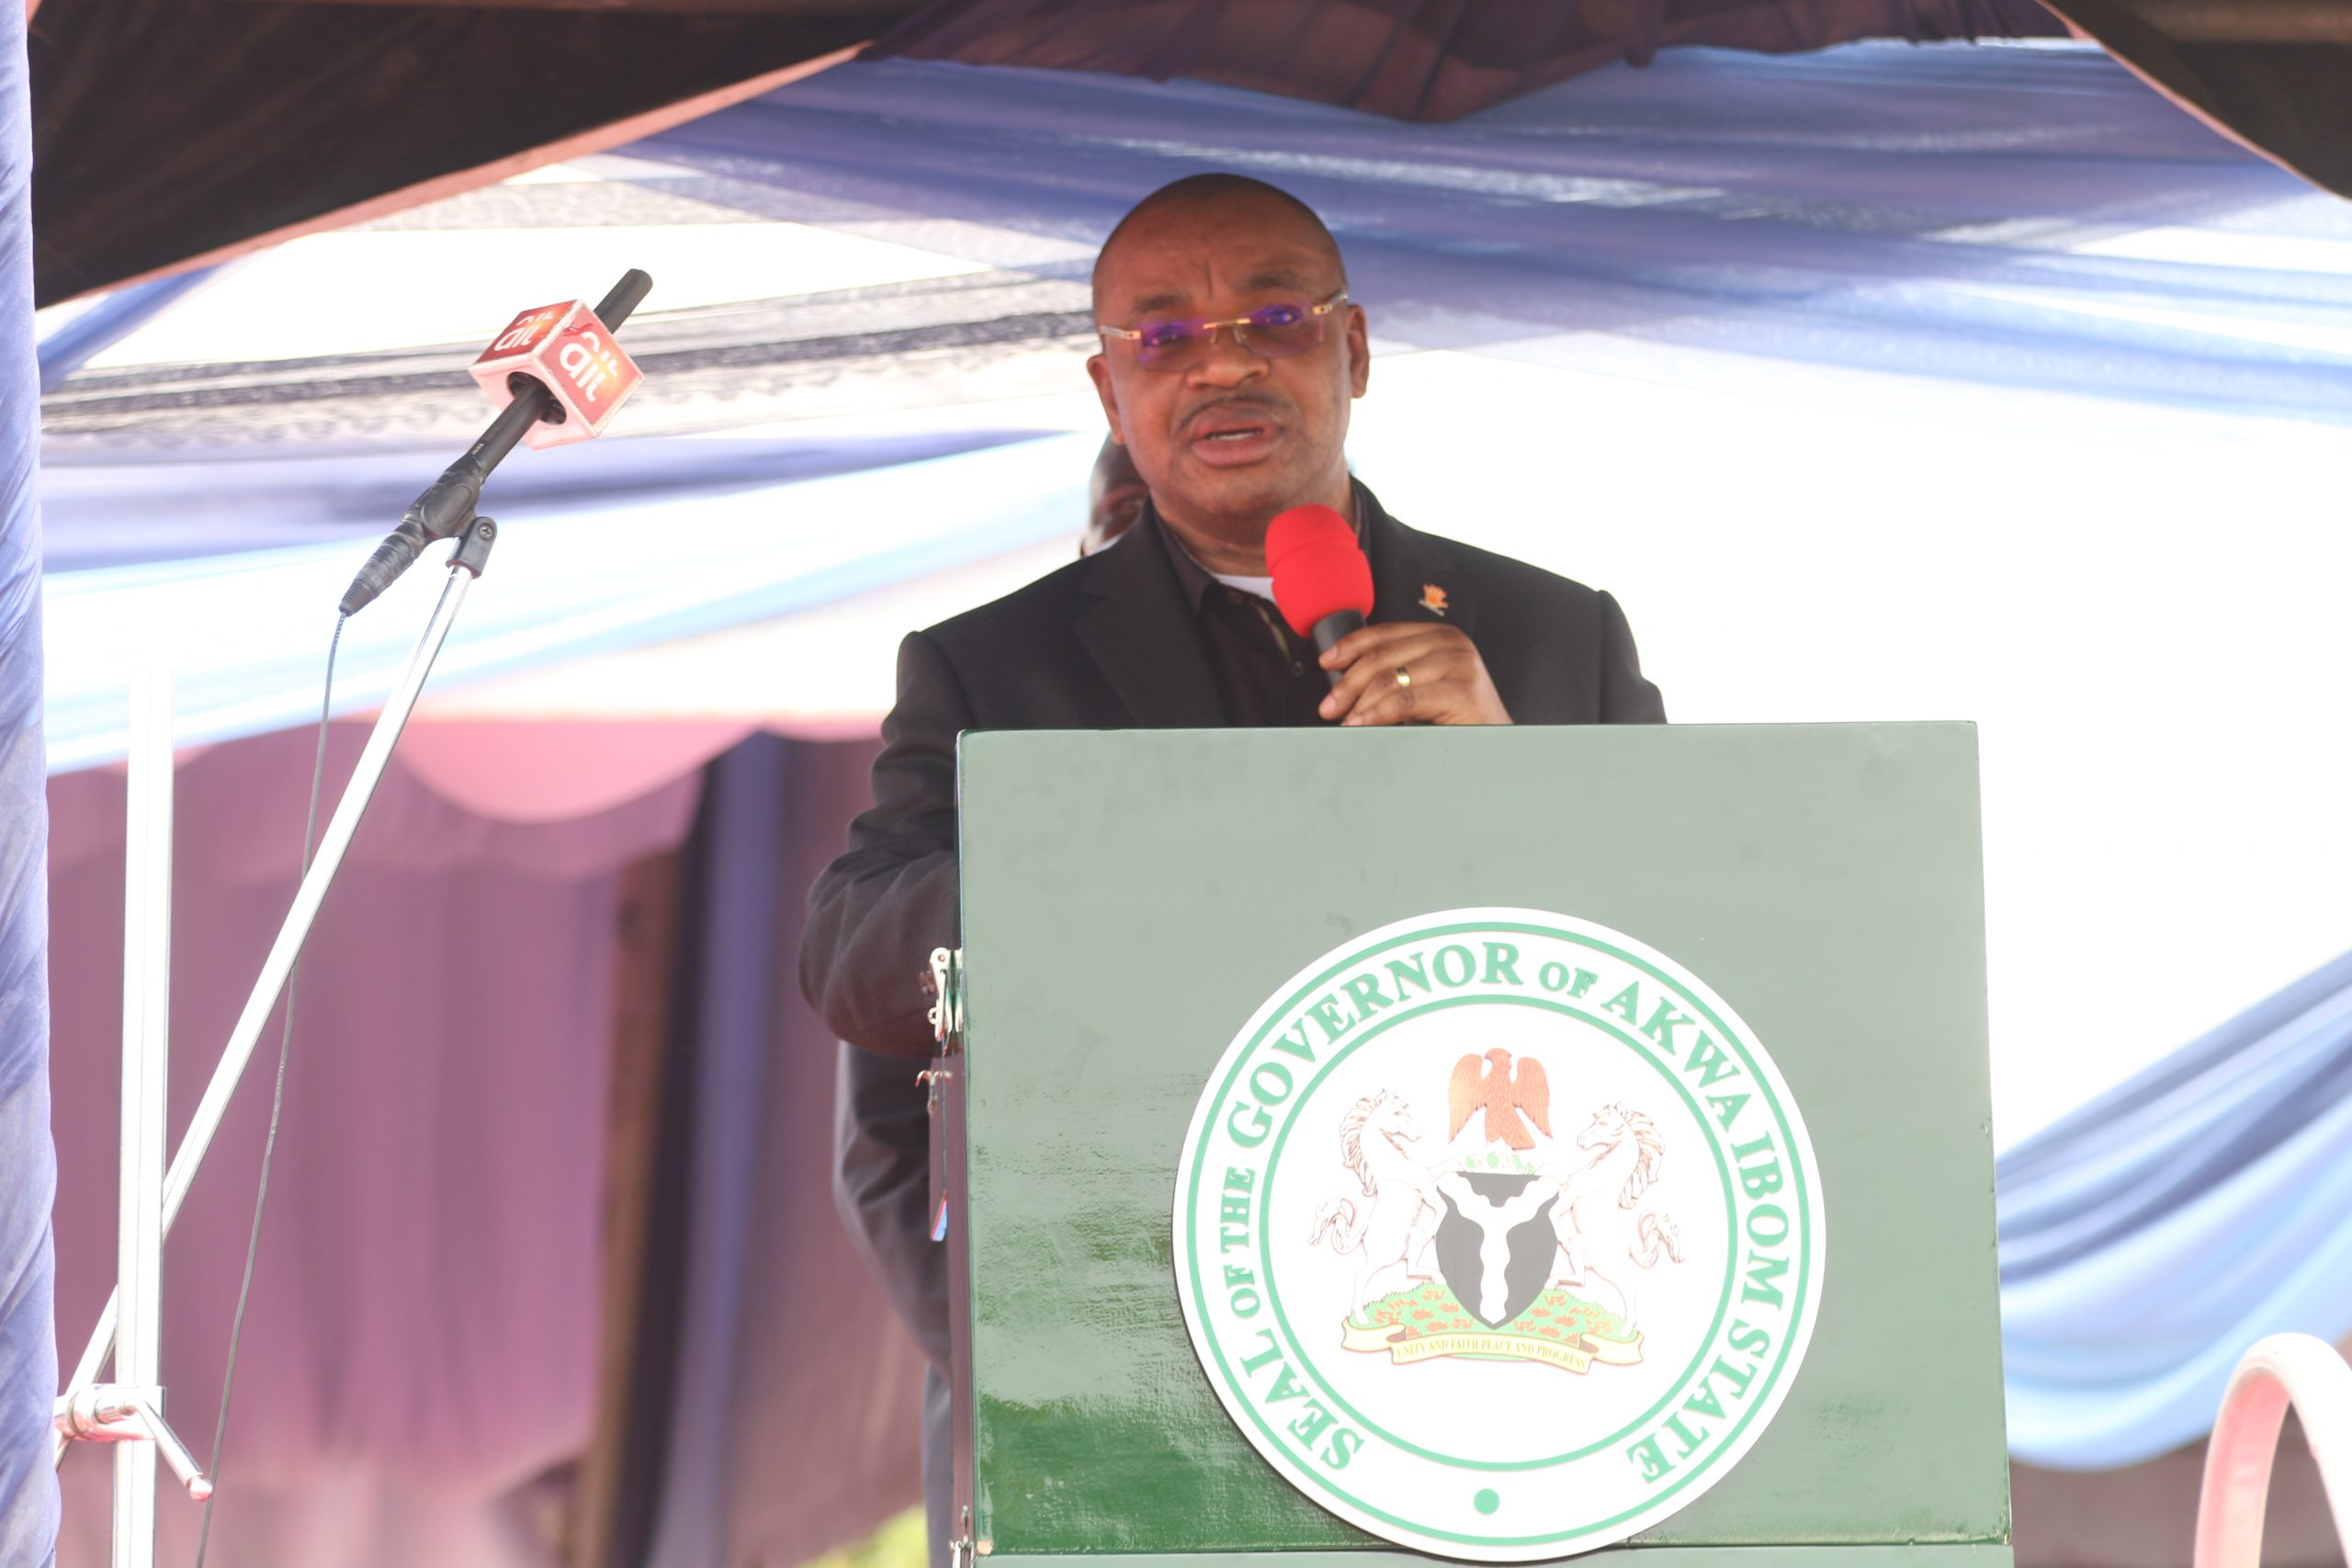 Funeral Oration by Gov Udom Emmanuel at the Funeral of Late Air Coomodore Idongesit Nkanga